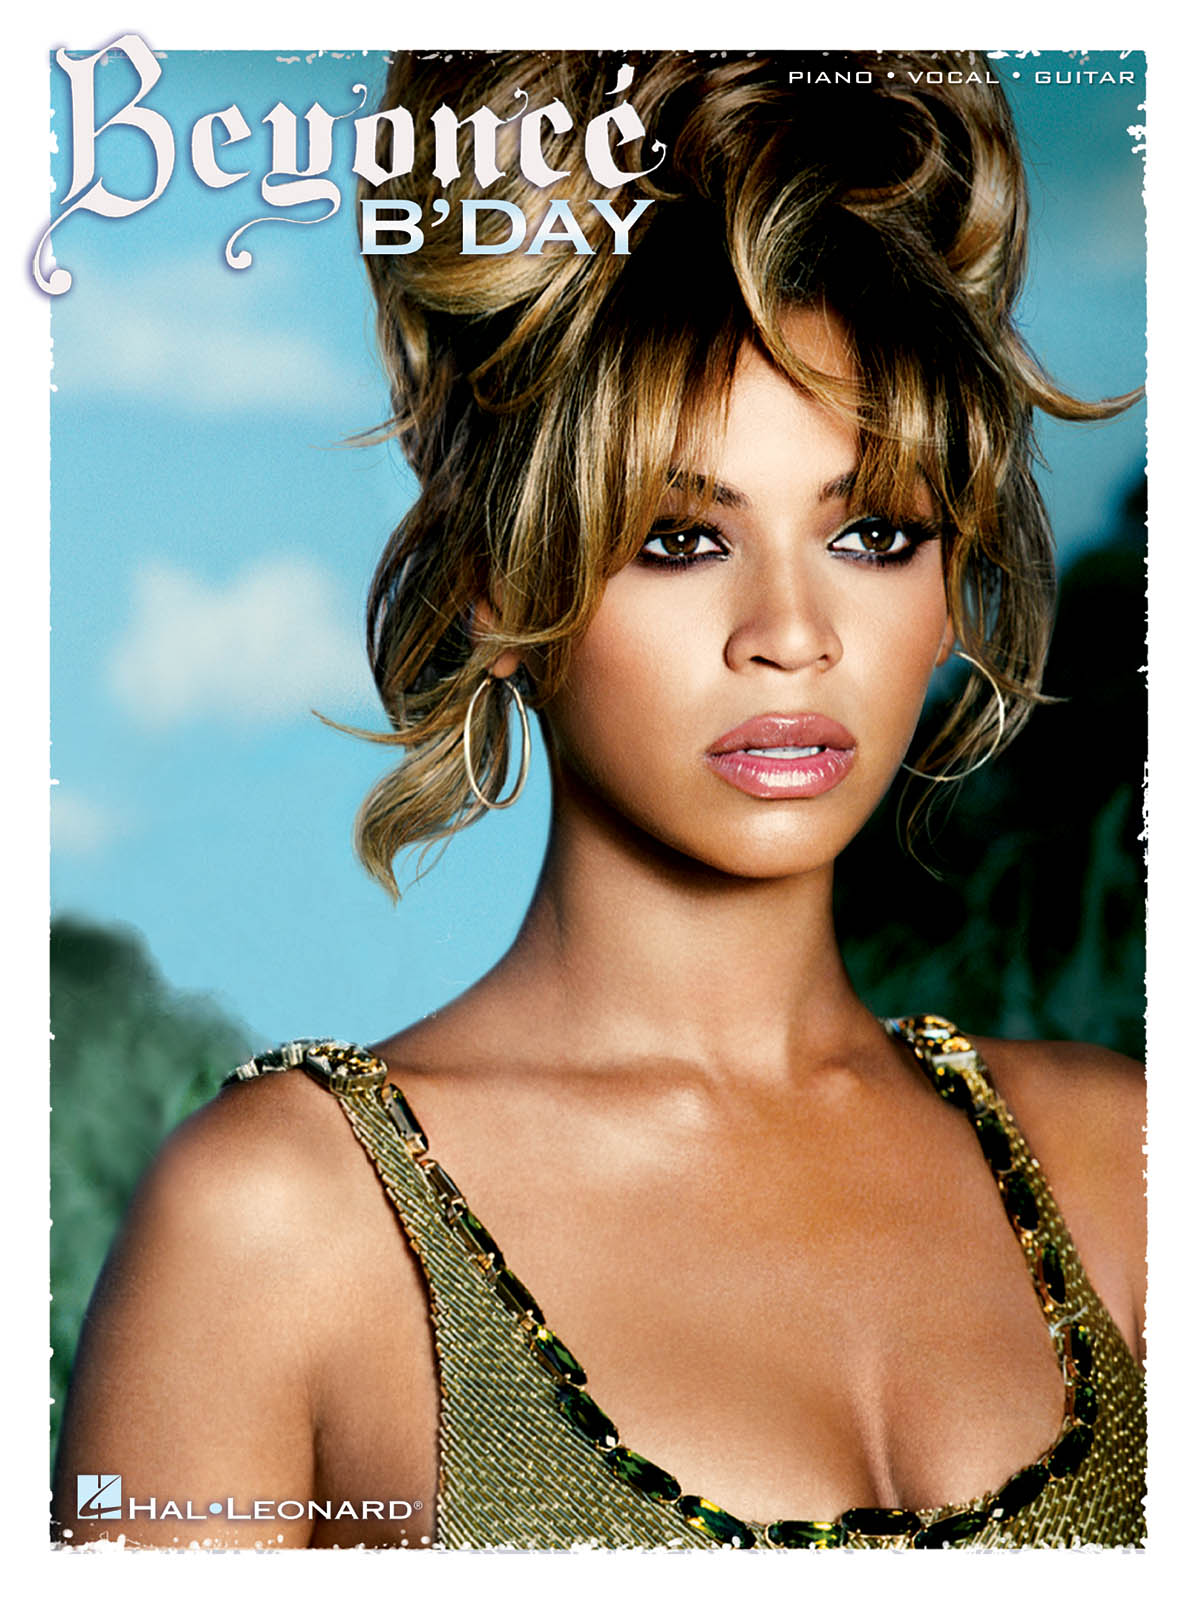 Beyoncé Knowles: Beyoncé - B'Day: Piano  Vocal and Guitar: Album Songbook